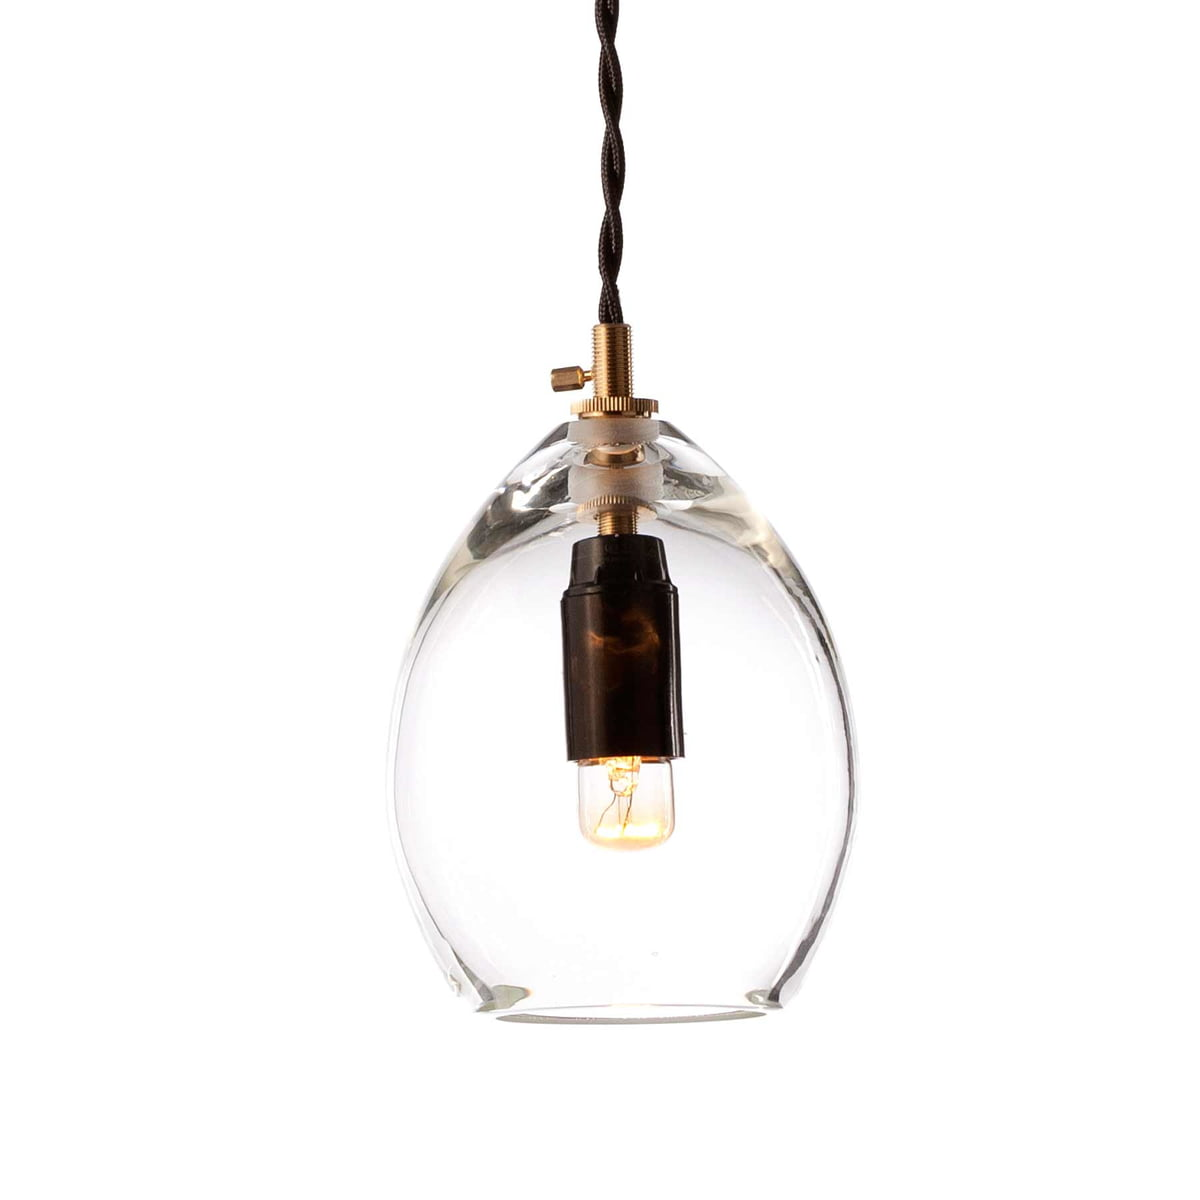 Unika pendant lamp by northern lighting the unika pendant lamp by northern in small transparent aloadofball Gallery